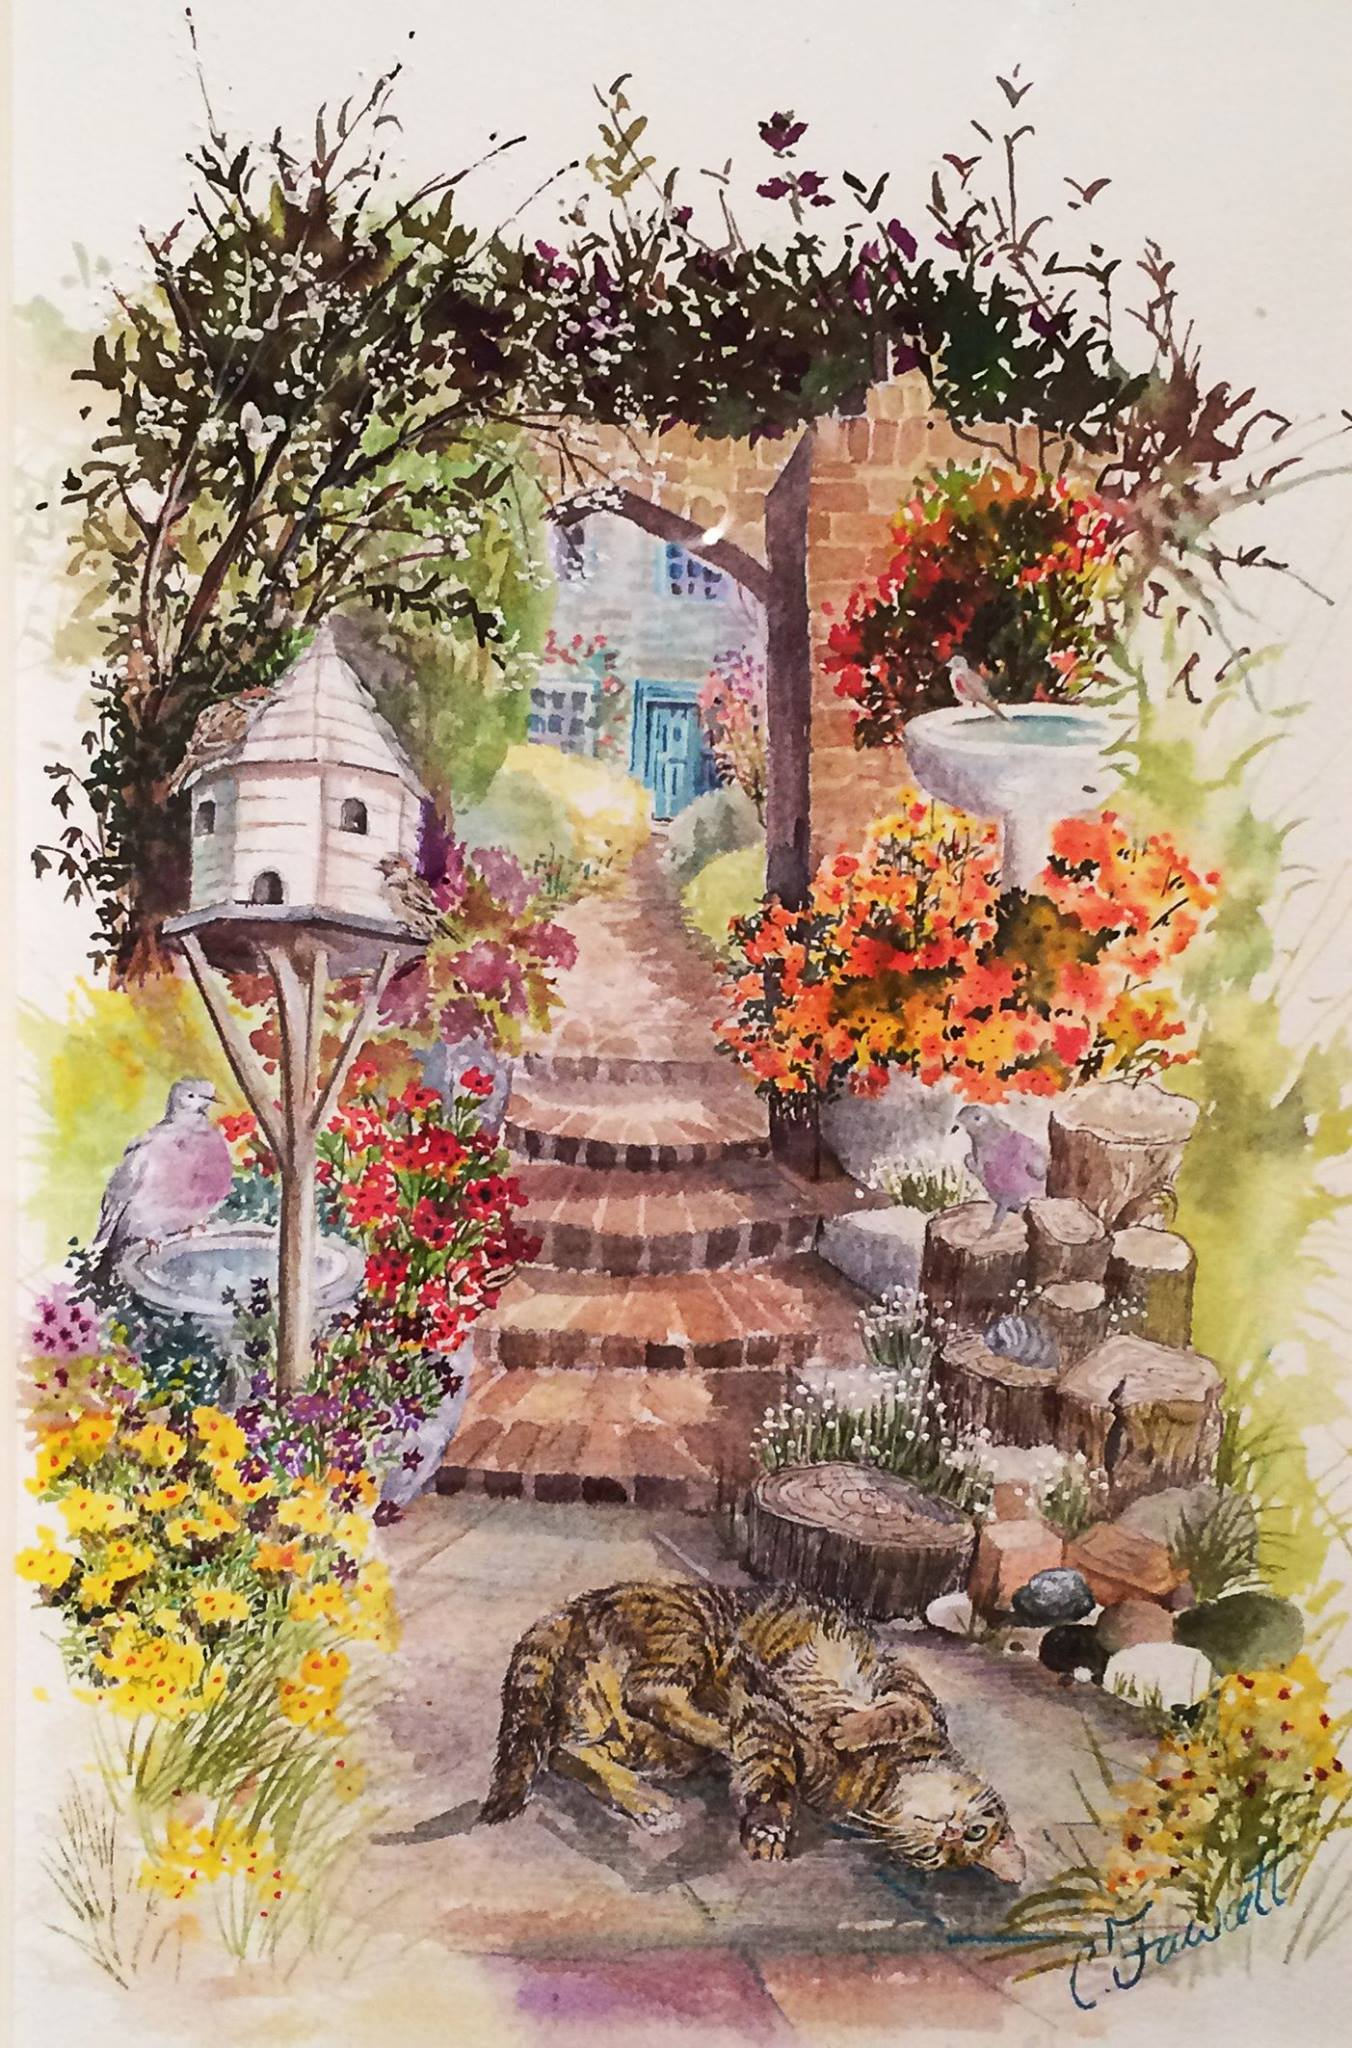 Bird Garden by Christine Hale (nee Fawcett)